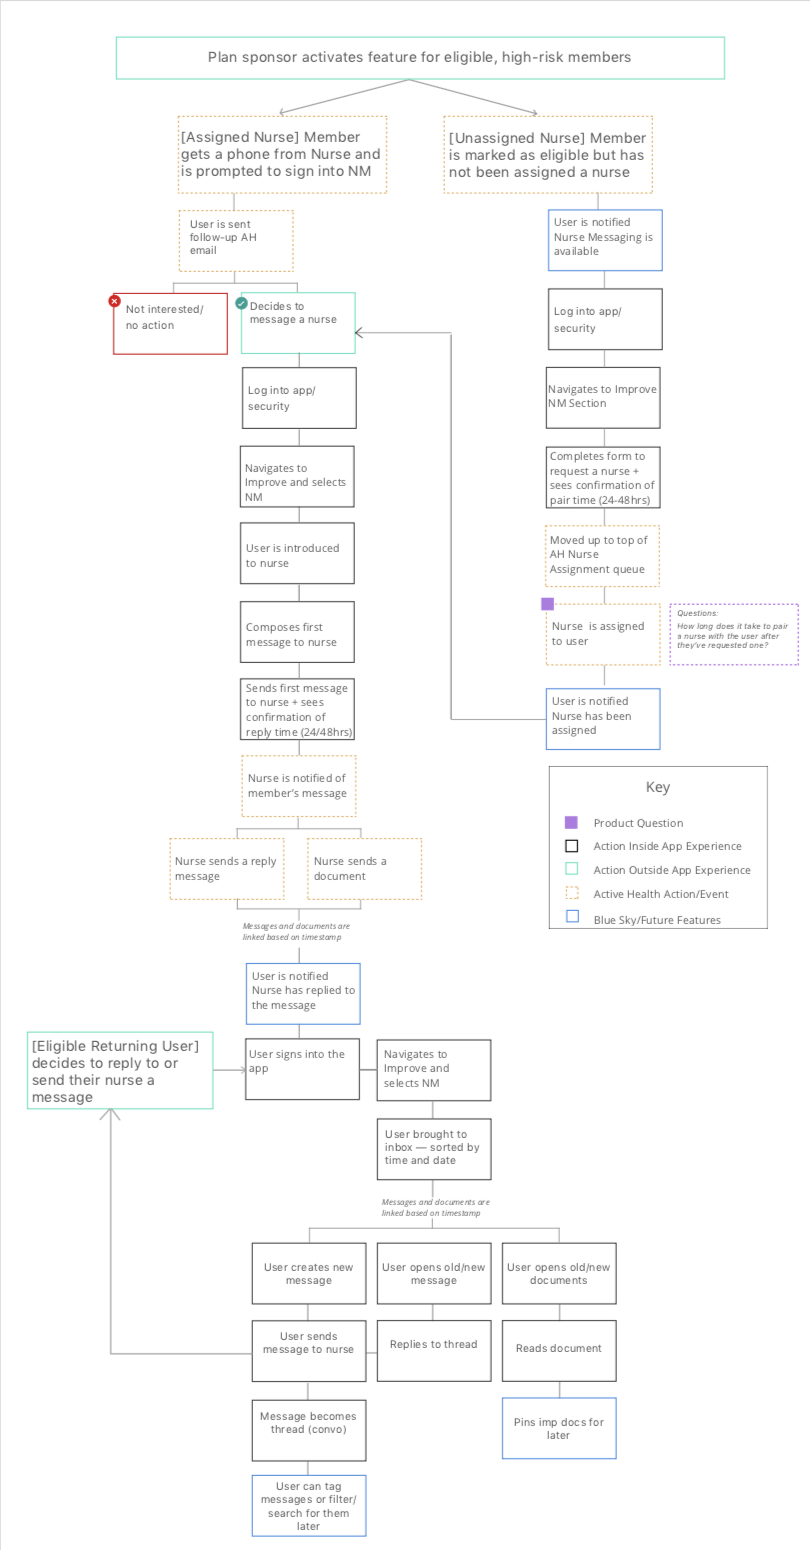 Example user flow - This user flow outlines what happens instances of success and failure, questions for product, actions taken inside and outside the app, actions that the third party company takes, as well as blue sky features for future iterations.